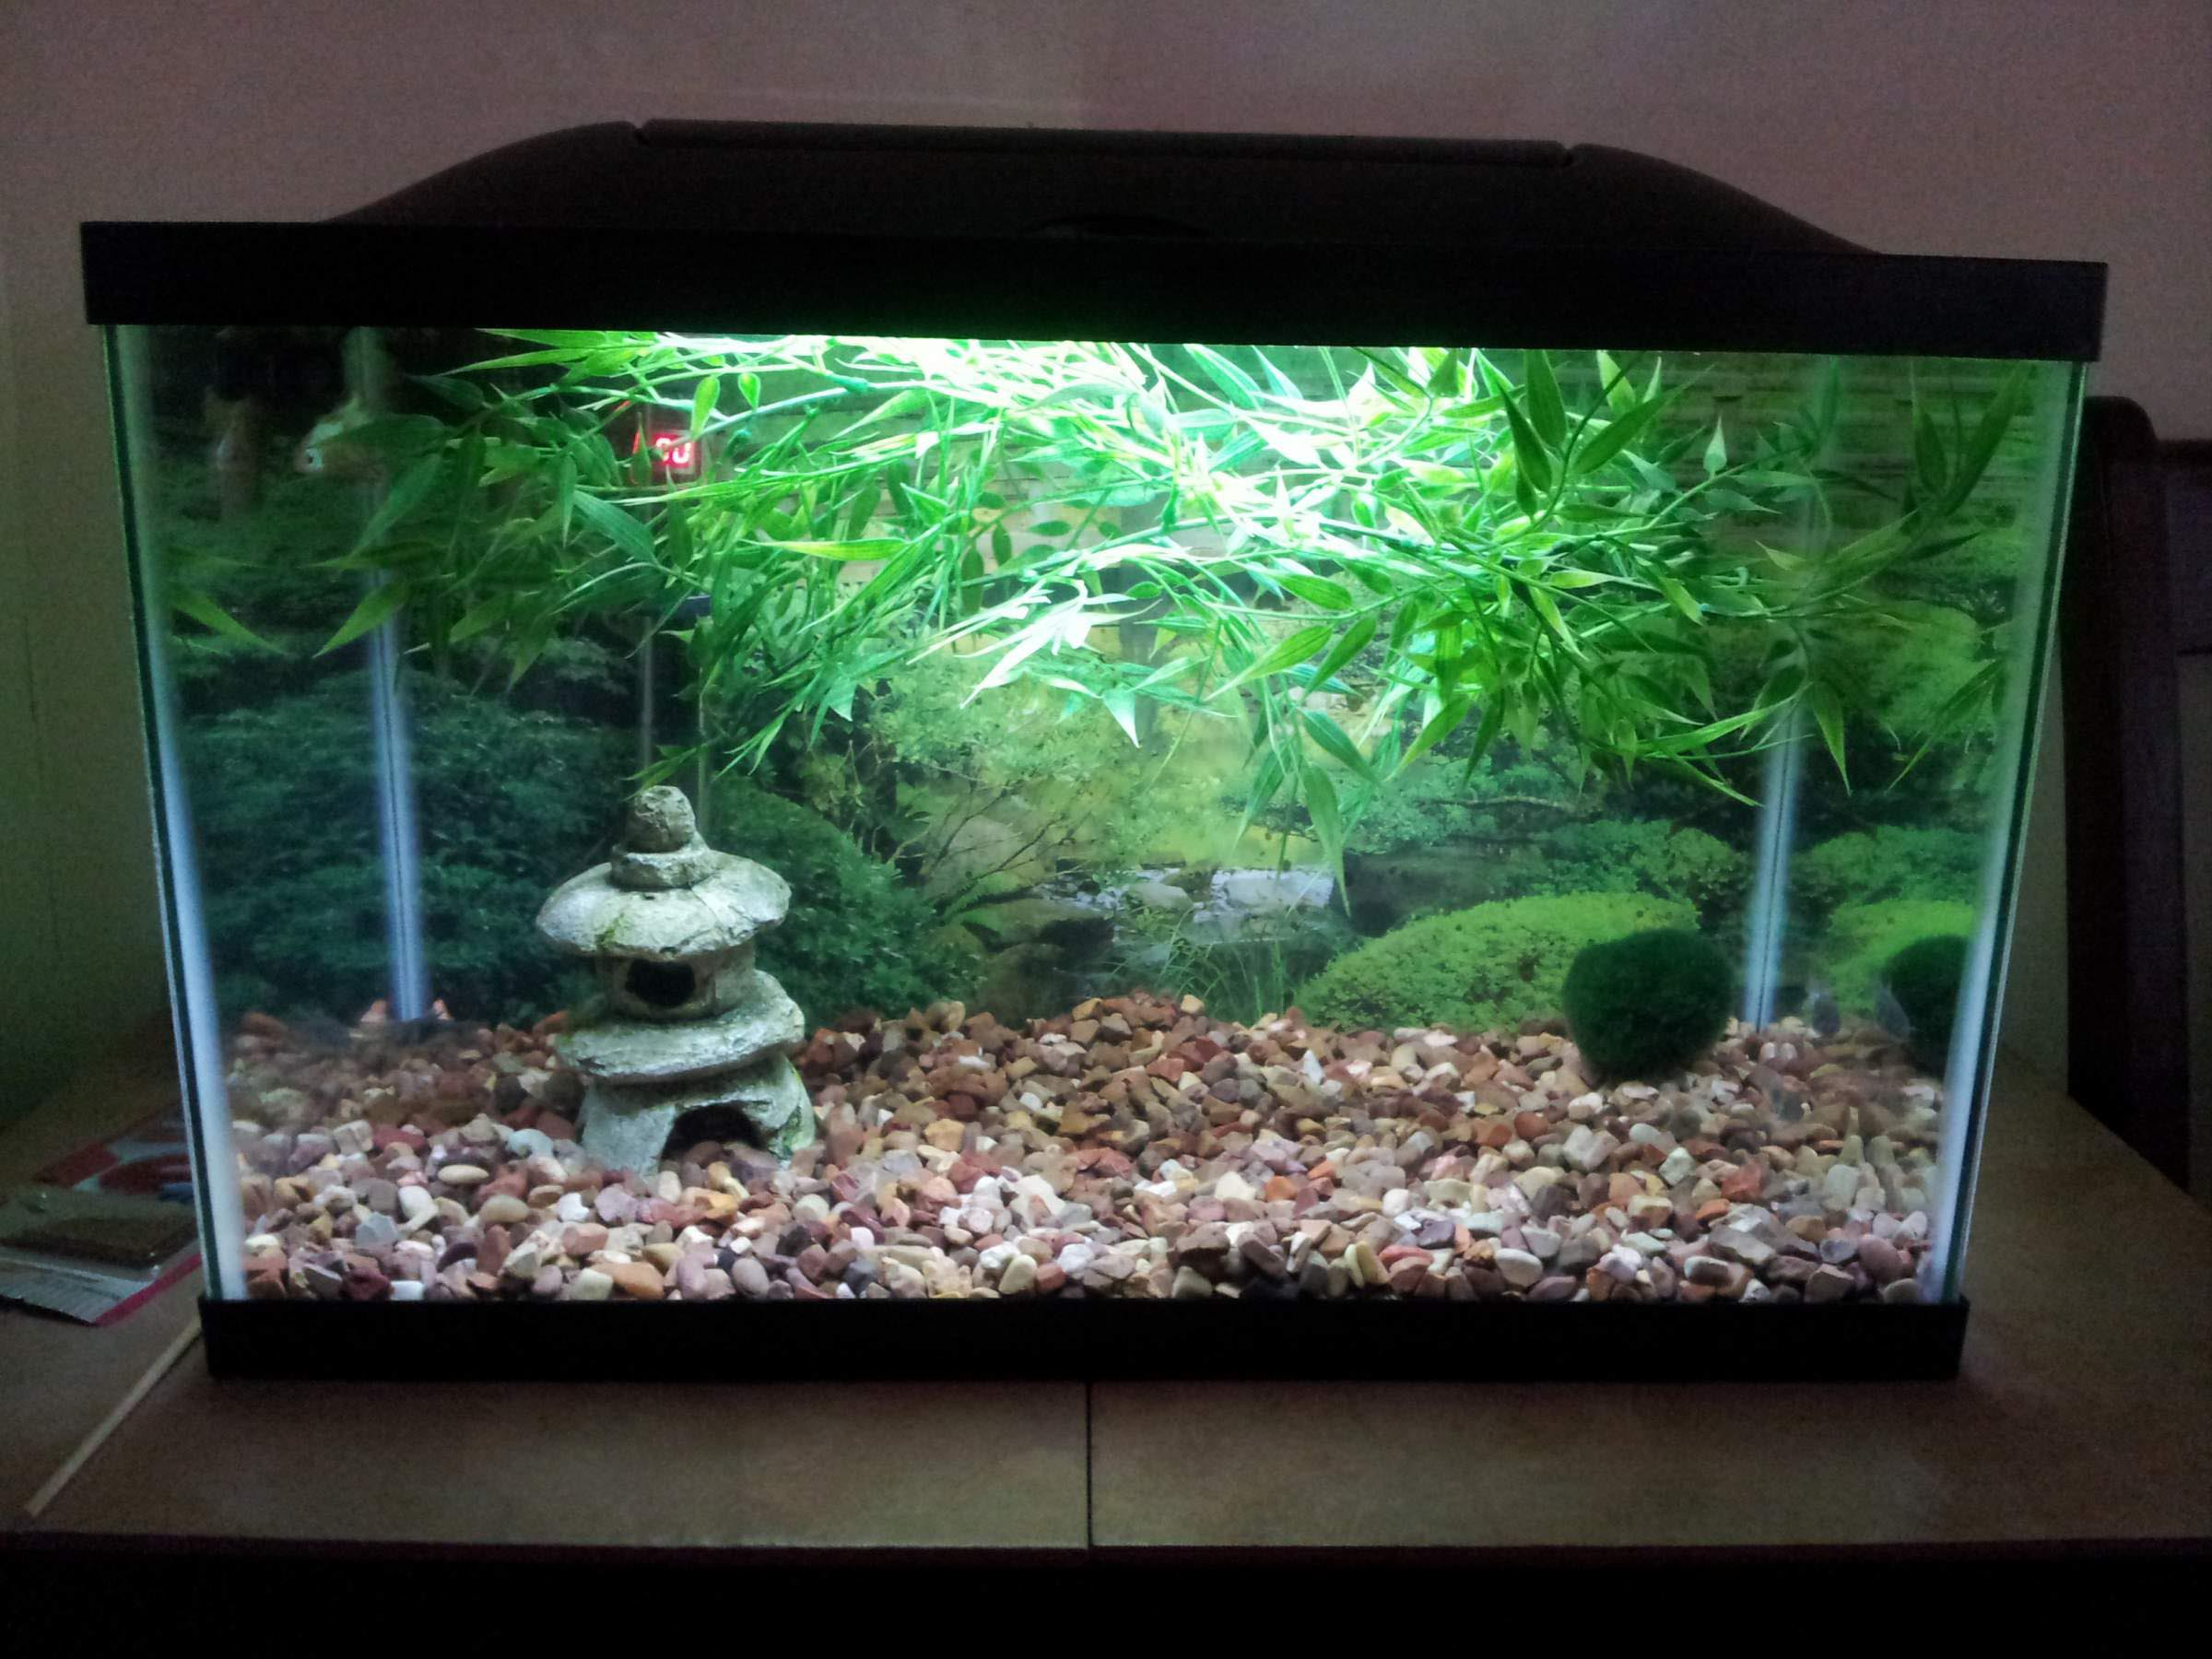 Aquarium Decoration Design : Asian fish aquarium decor design ideas